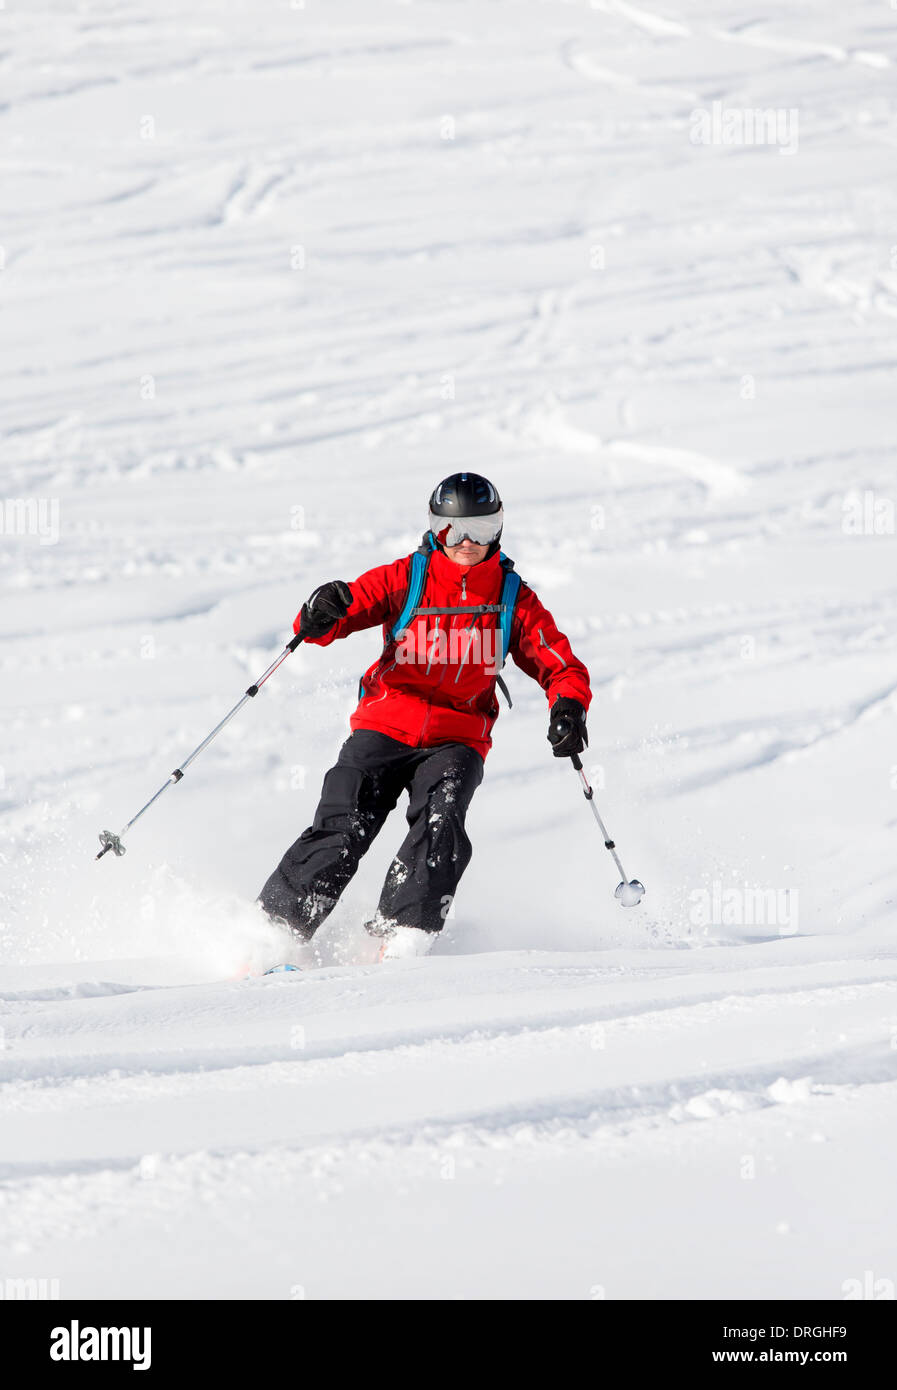 Male with visor helmet is skiing back country - Stock Image